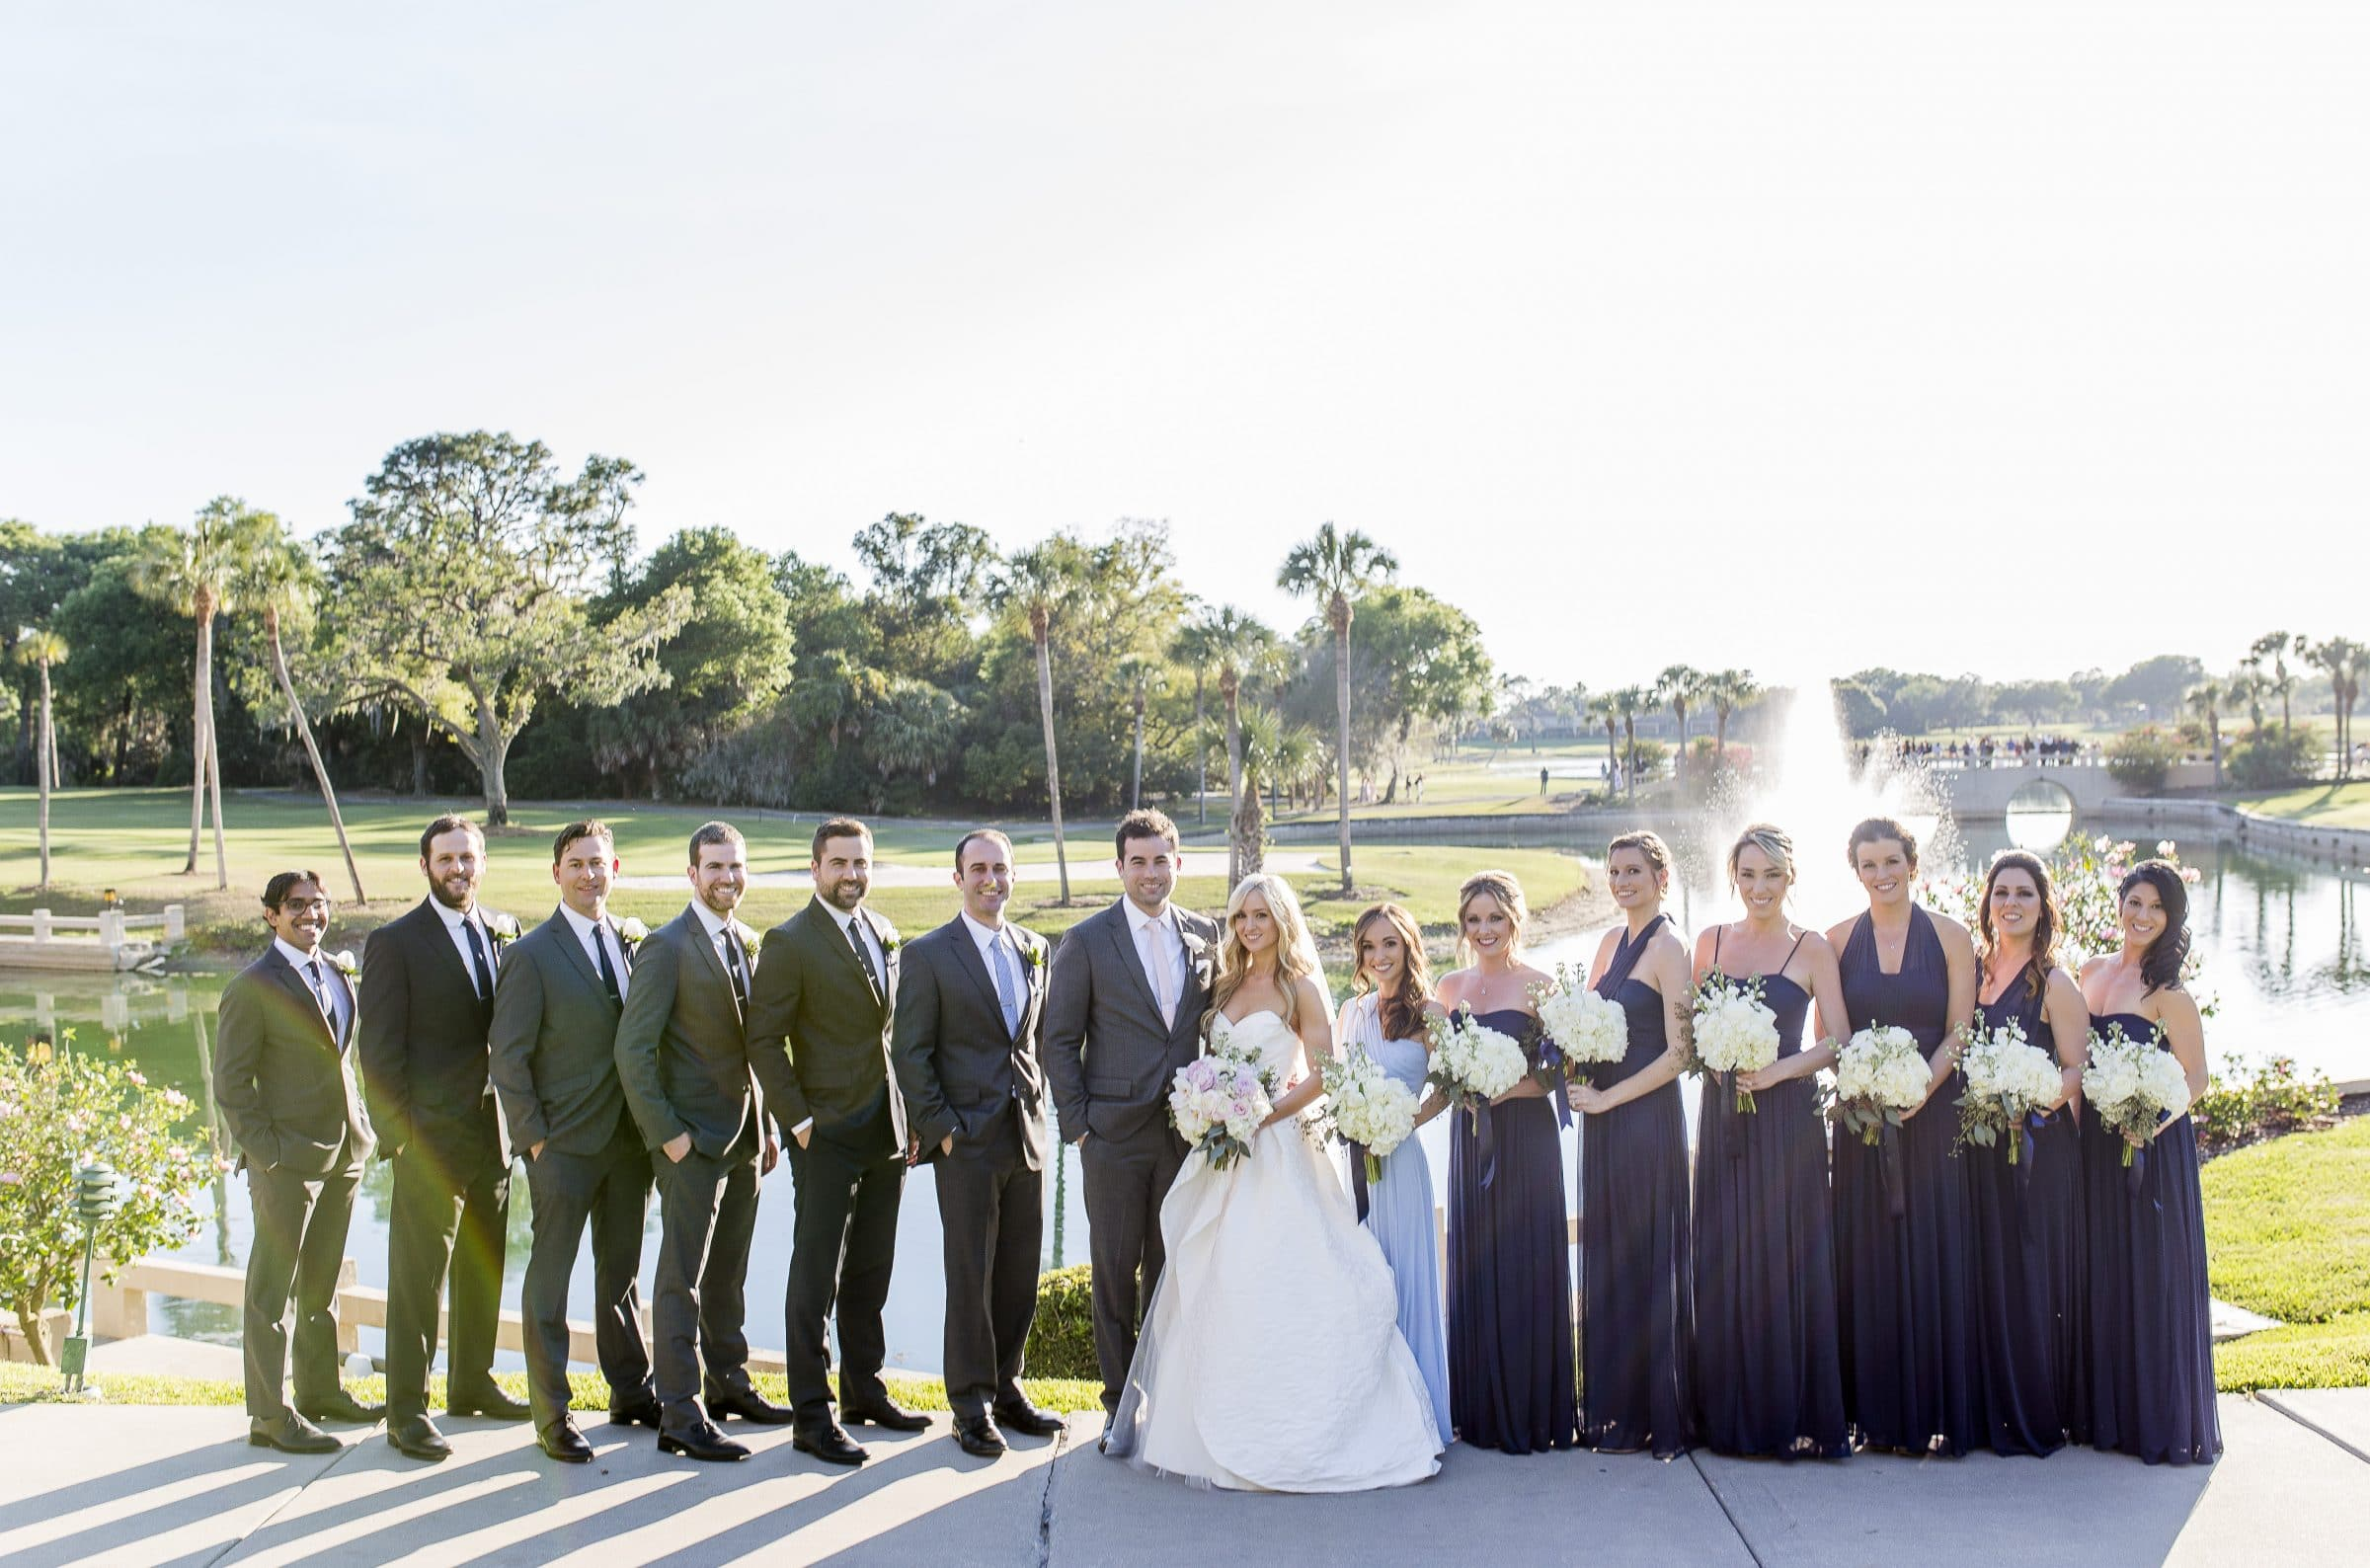 Bride and groom with wedding party overlooking golf course at Mission Inn